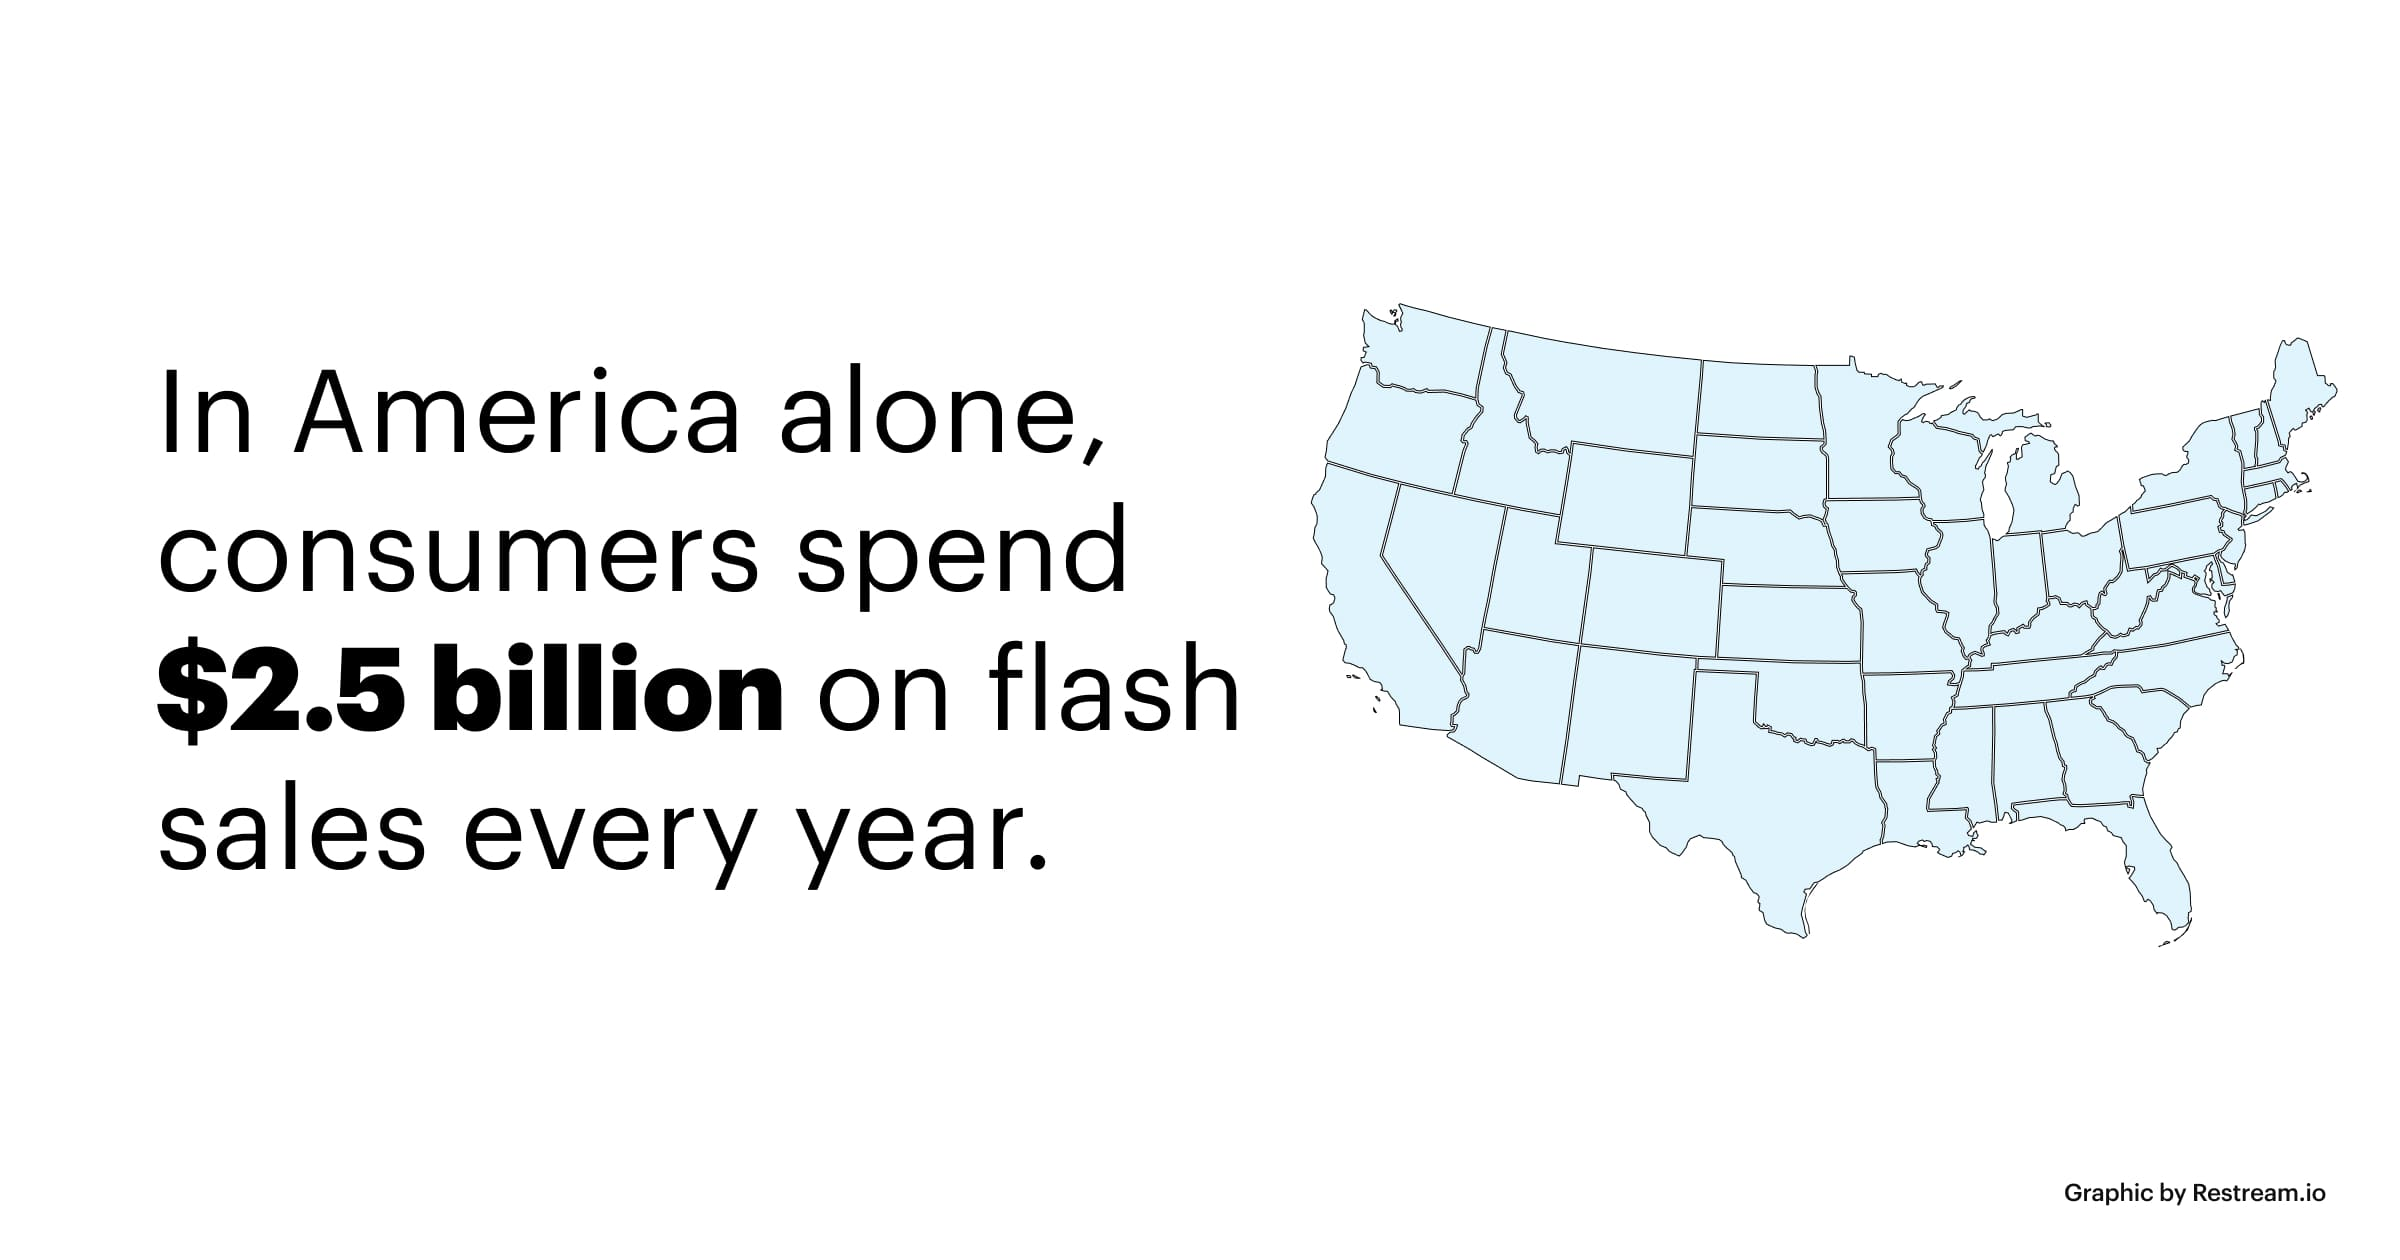 In America alone, consumers spend $2.5 billion on flash sales every year